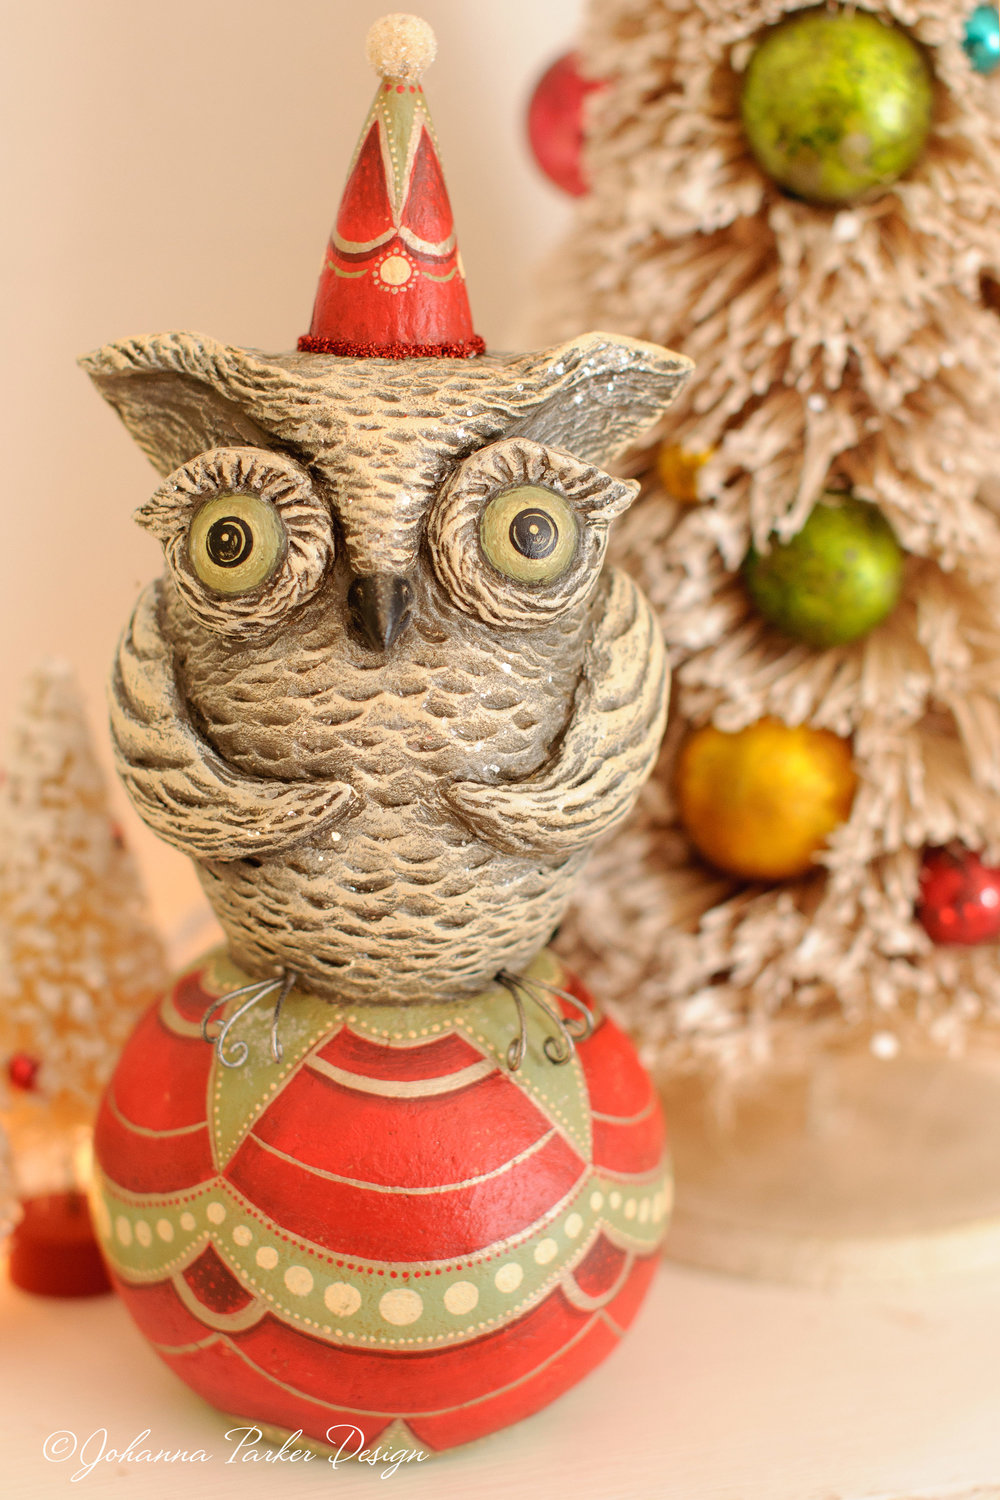 Ornament perched owl